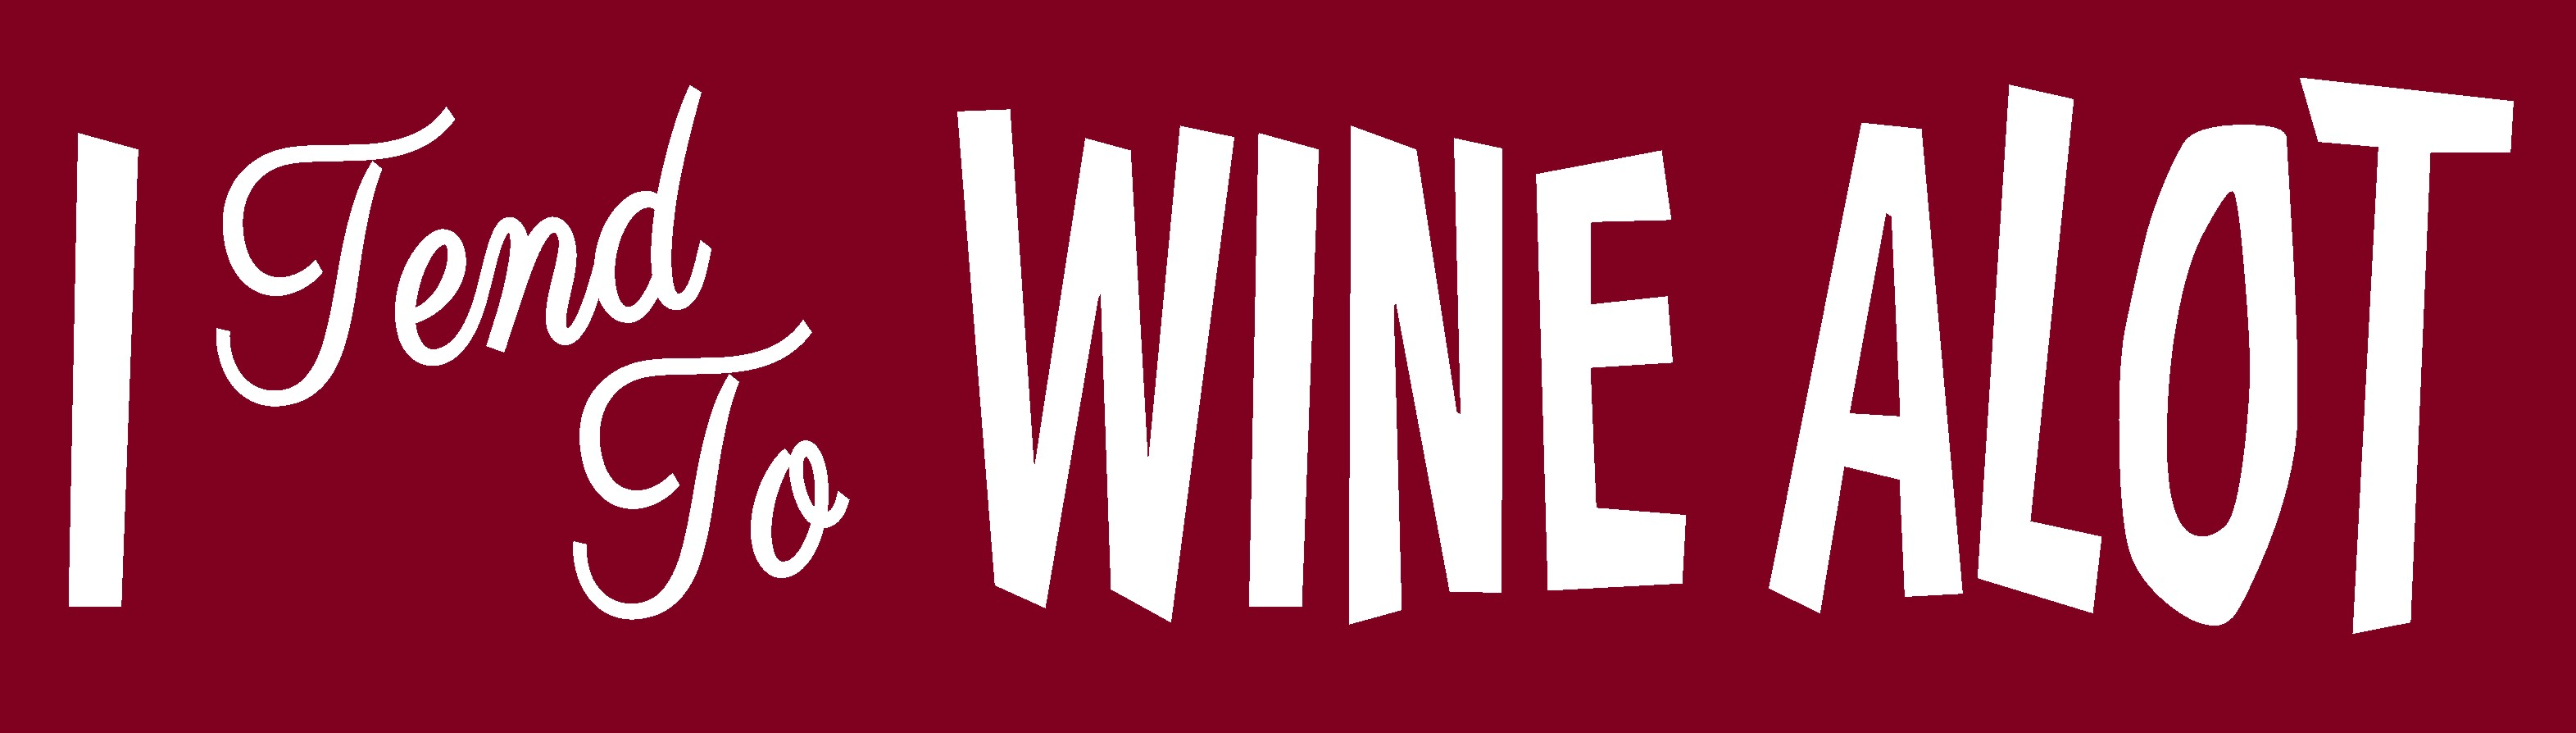 """I TEND TO WINE ALOT 10.5"""" X 3"""" WOODEN BLOCK SIGN"""